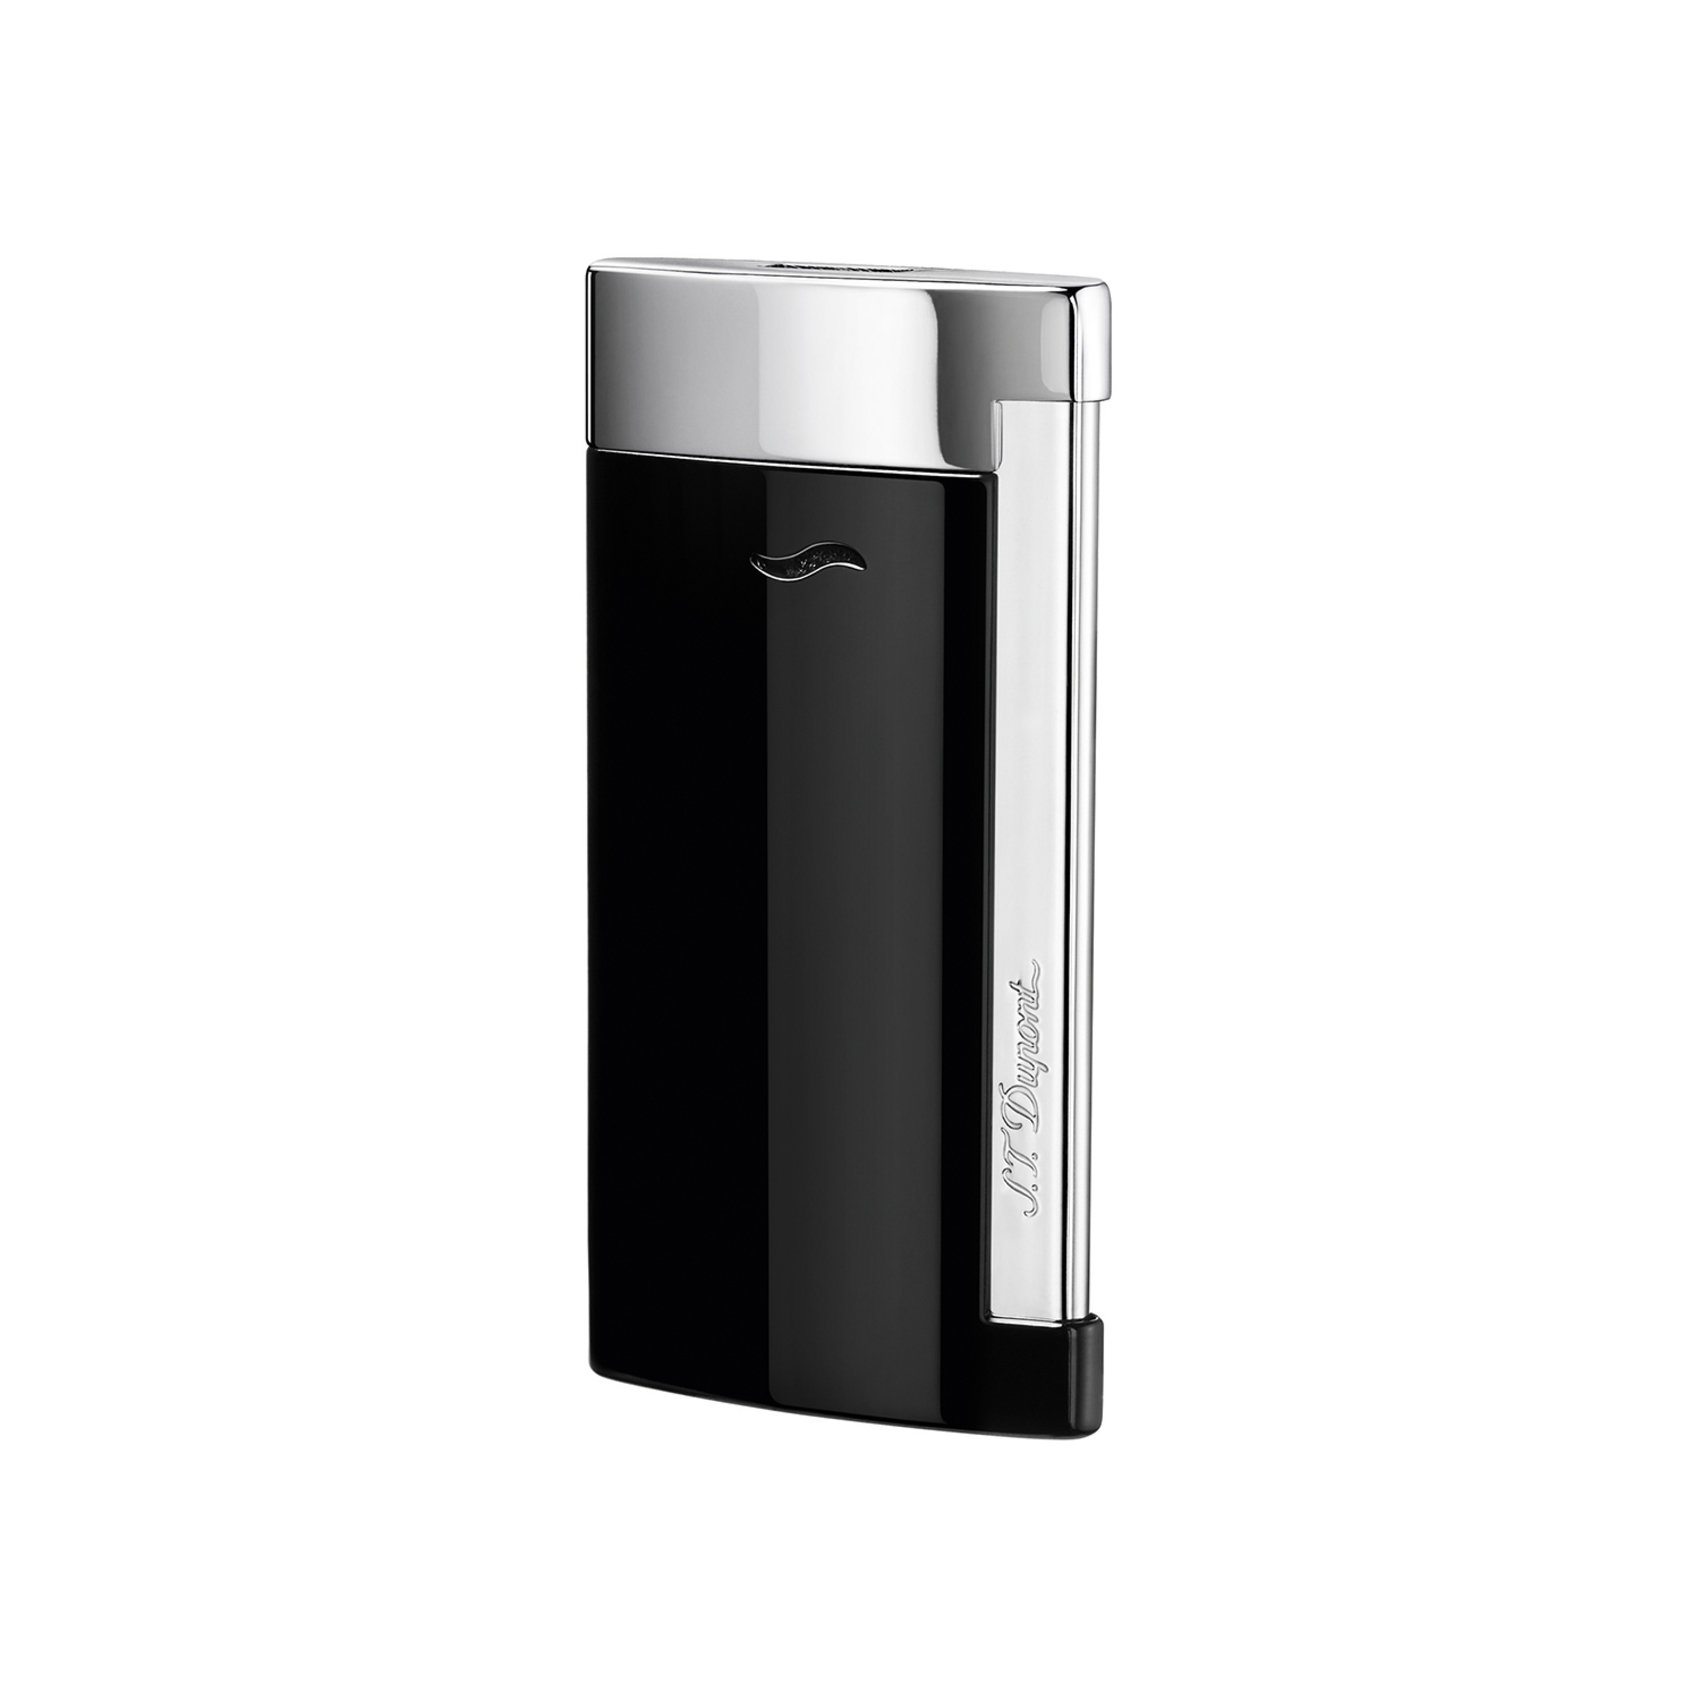 S.T. Dupont Αναπτήρας Slim 7 Collection 027700